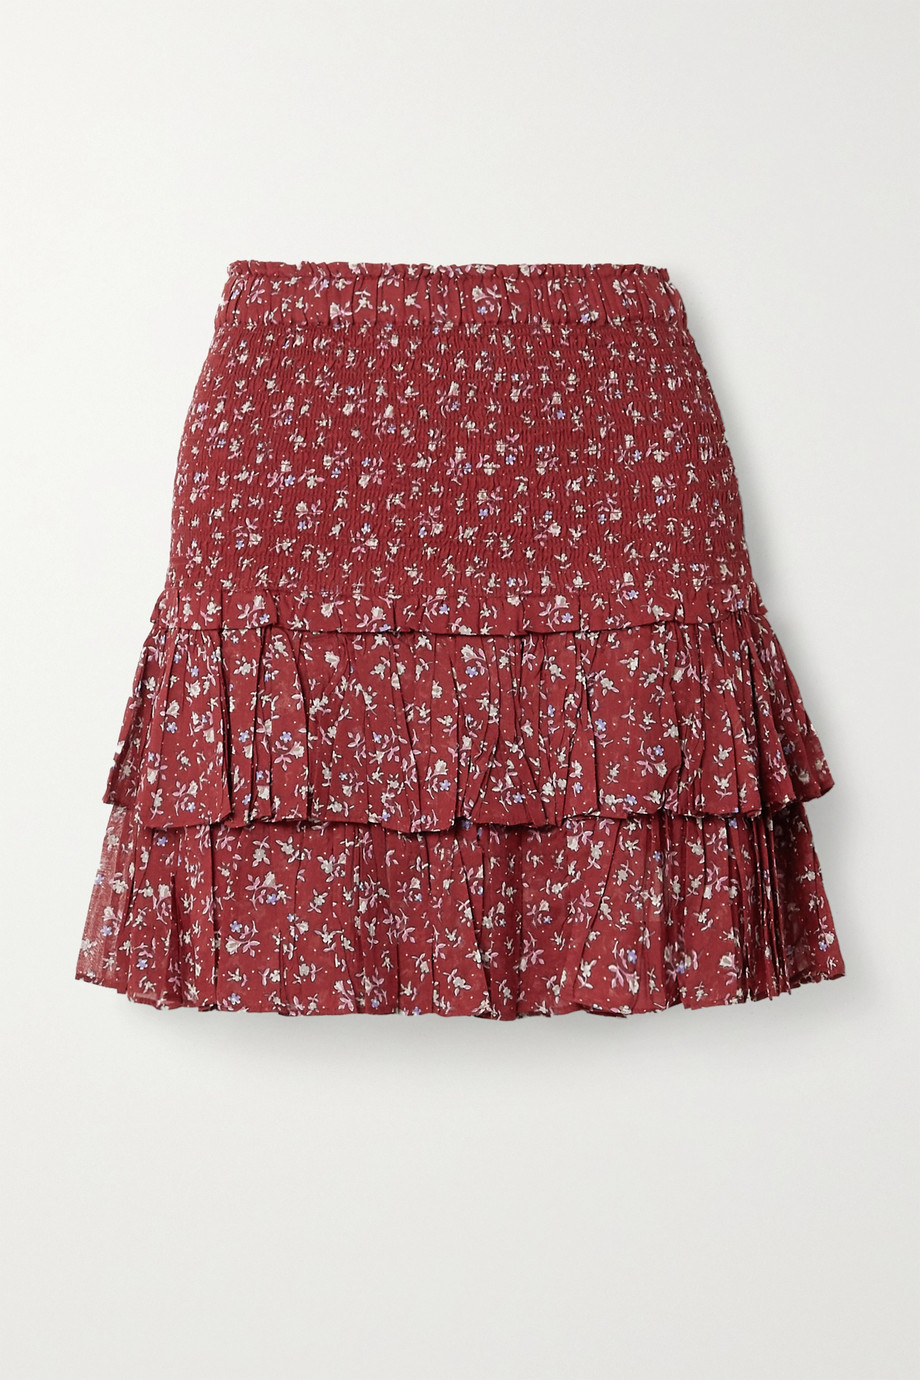 Isabel Marant Étoile Naomi ruffled floral-print cotton-voile mini skirt